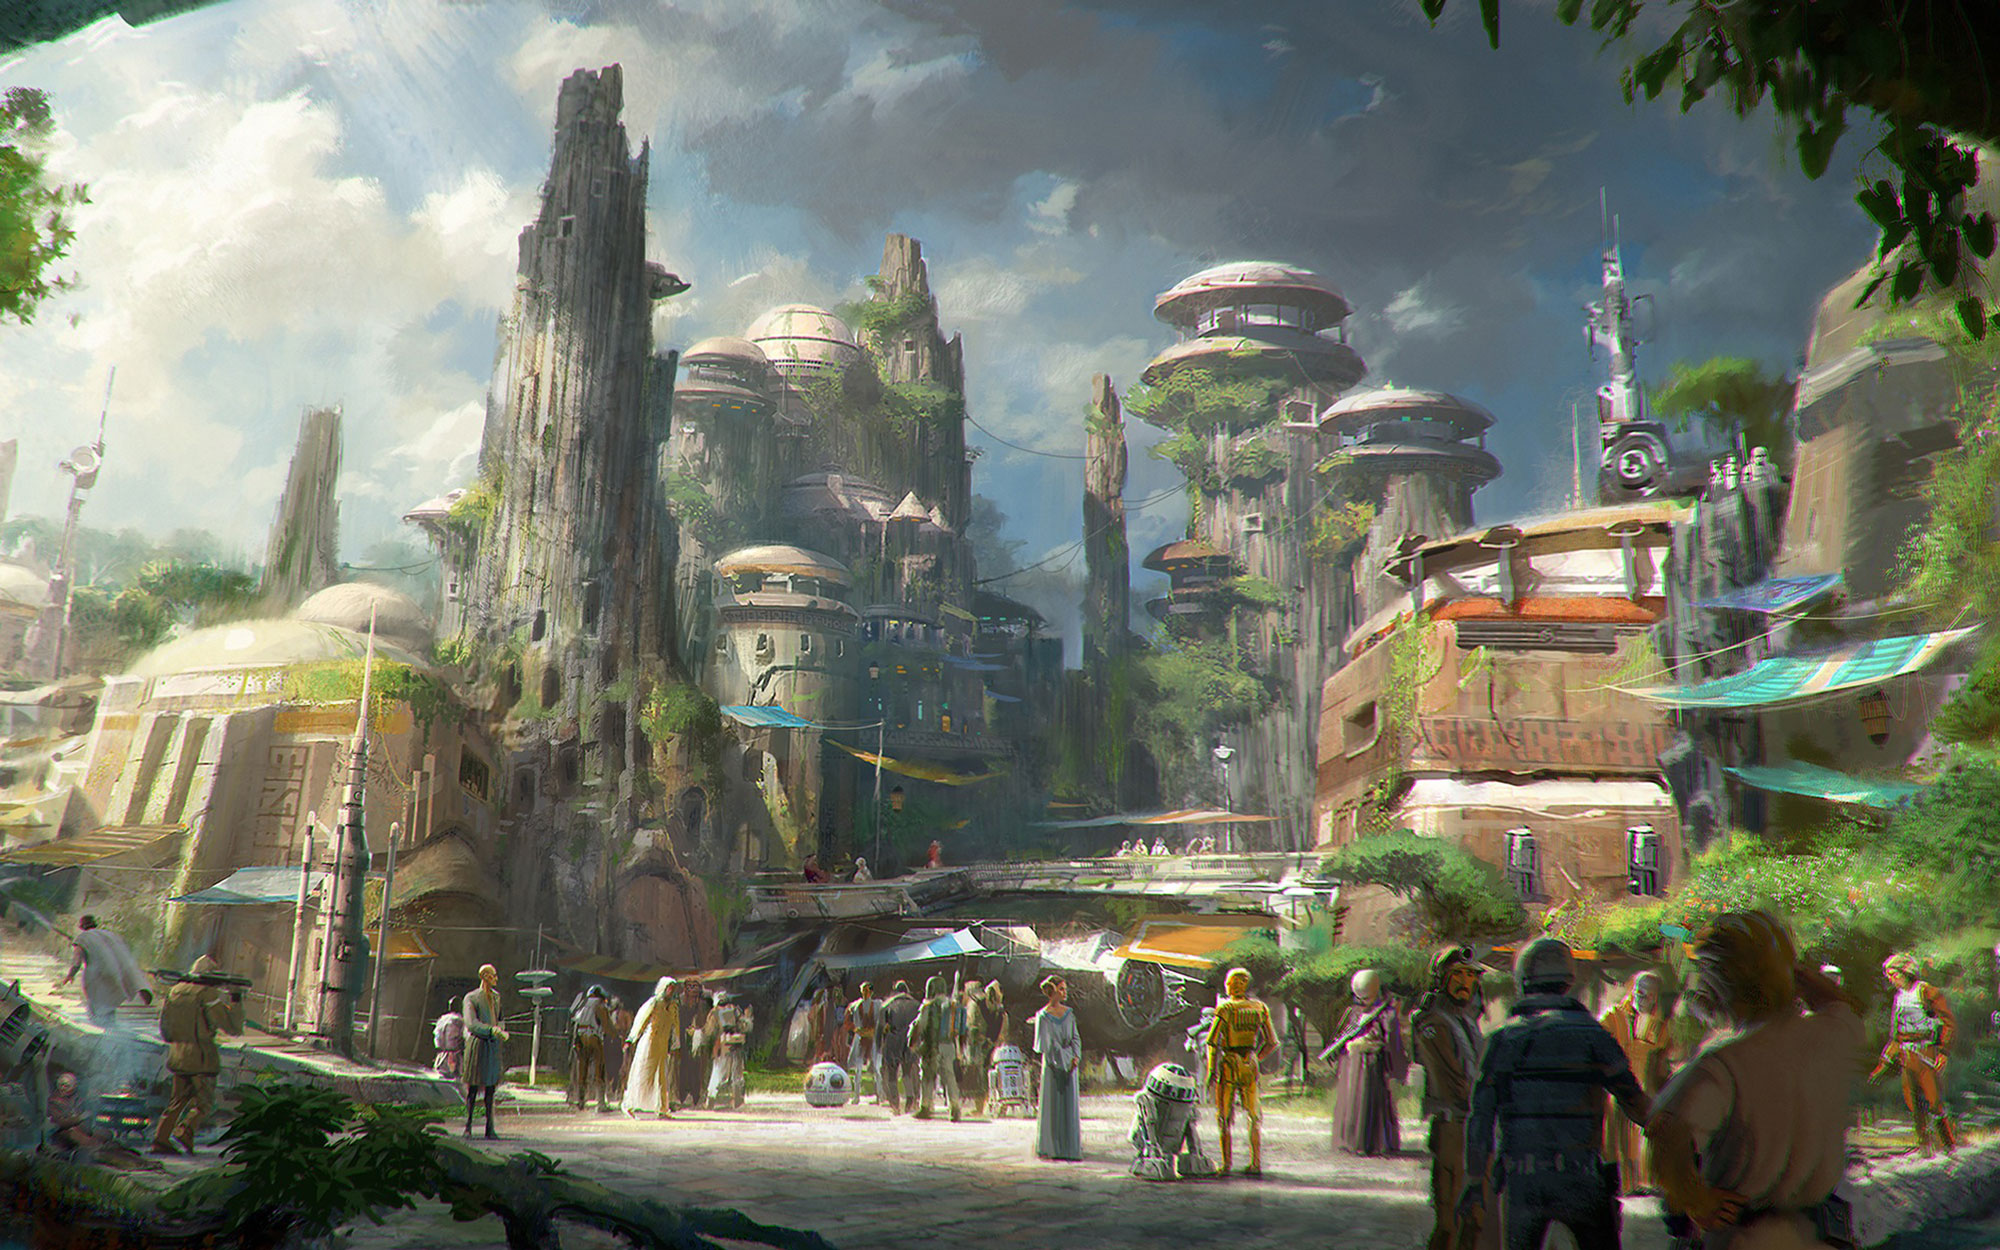 The Definitive Star Wars Land Timeline